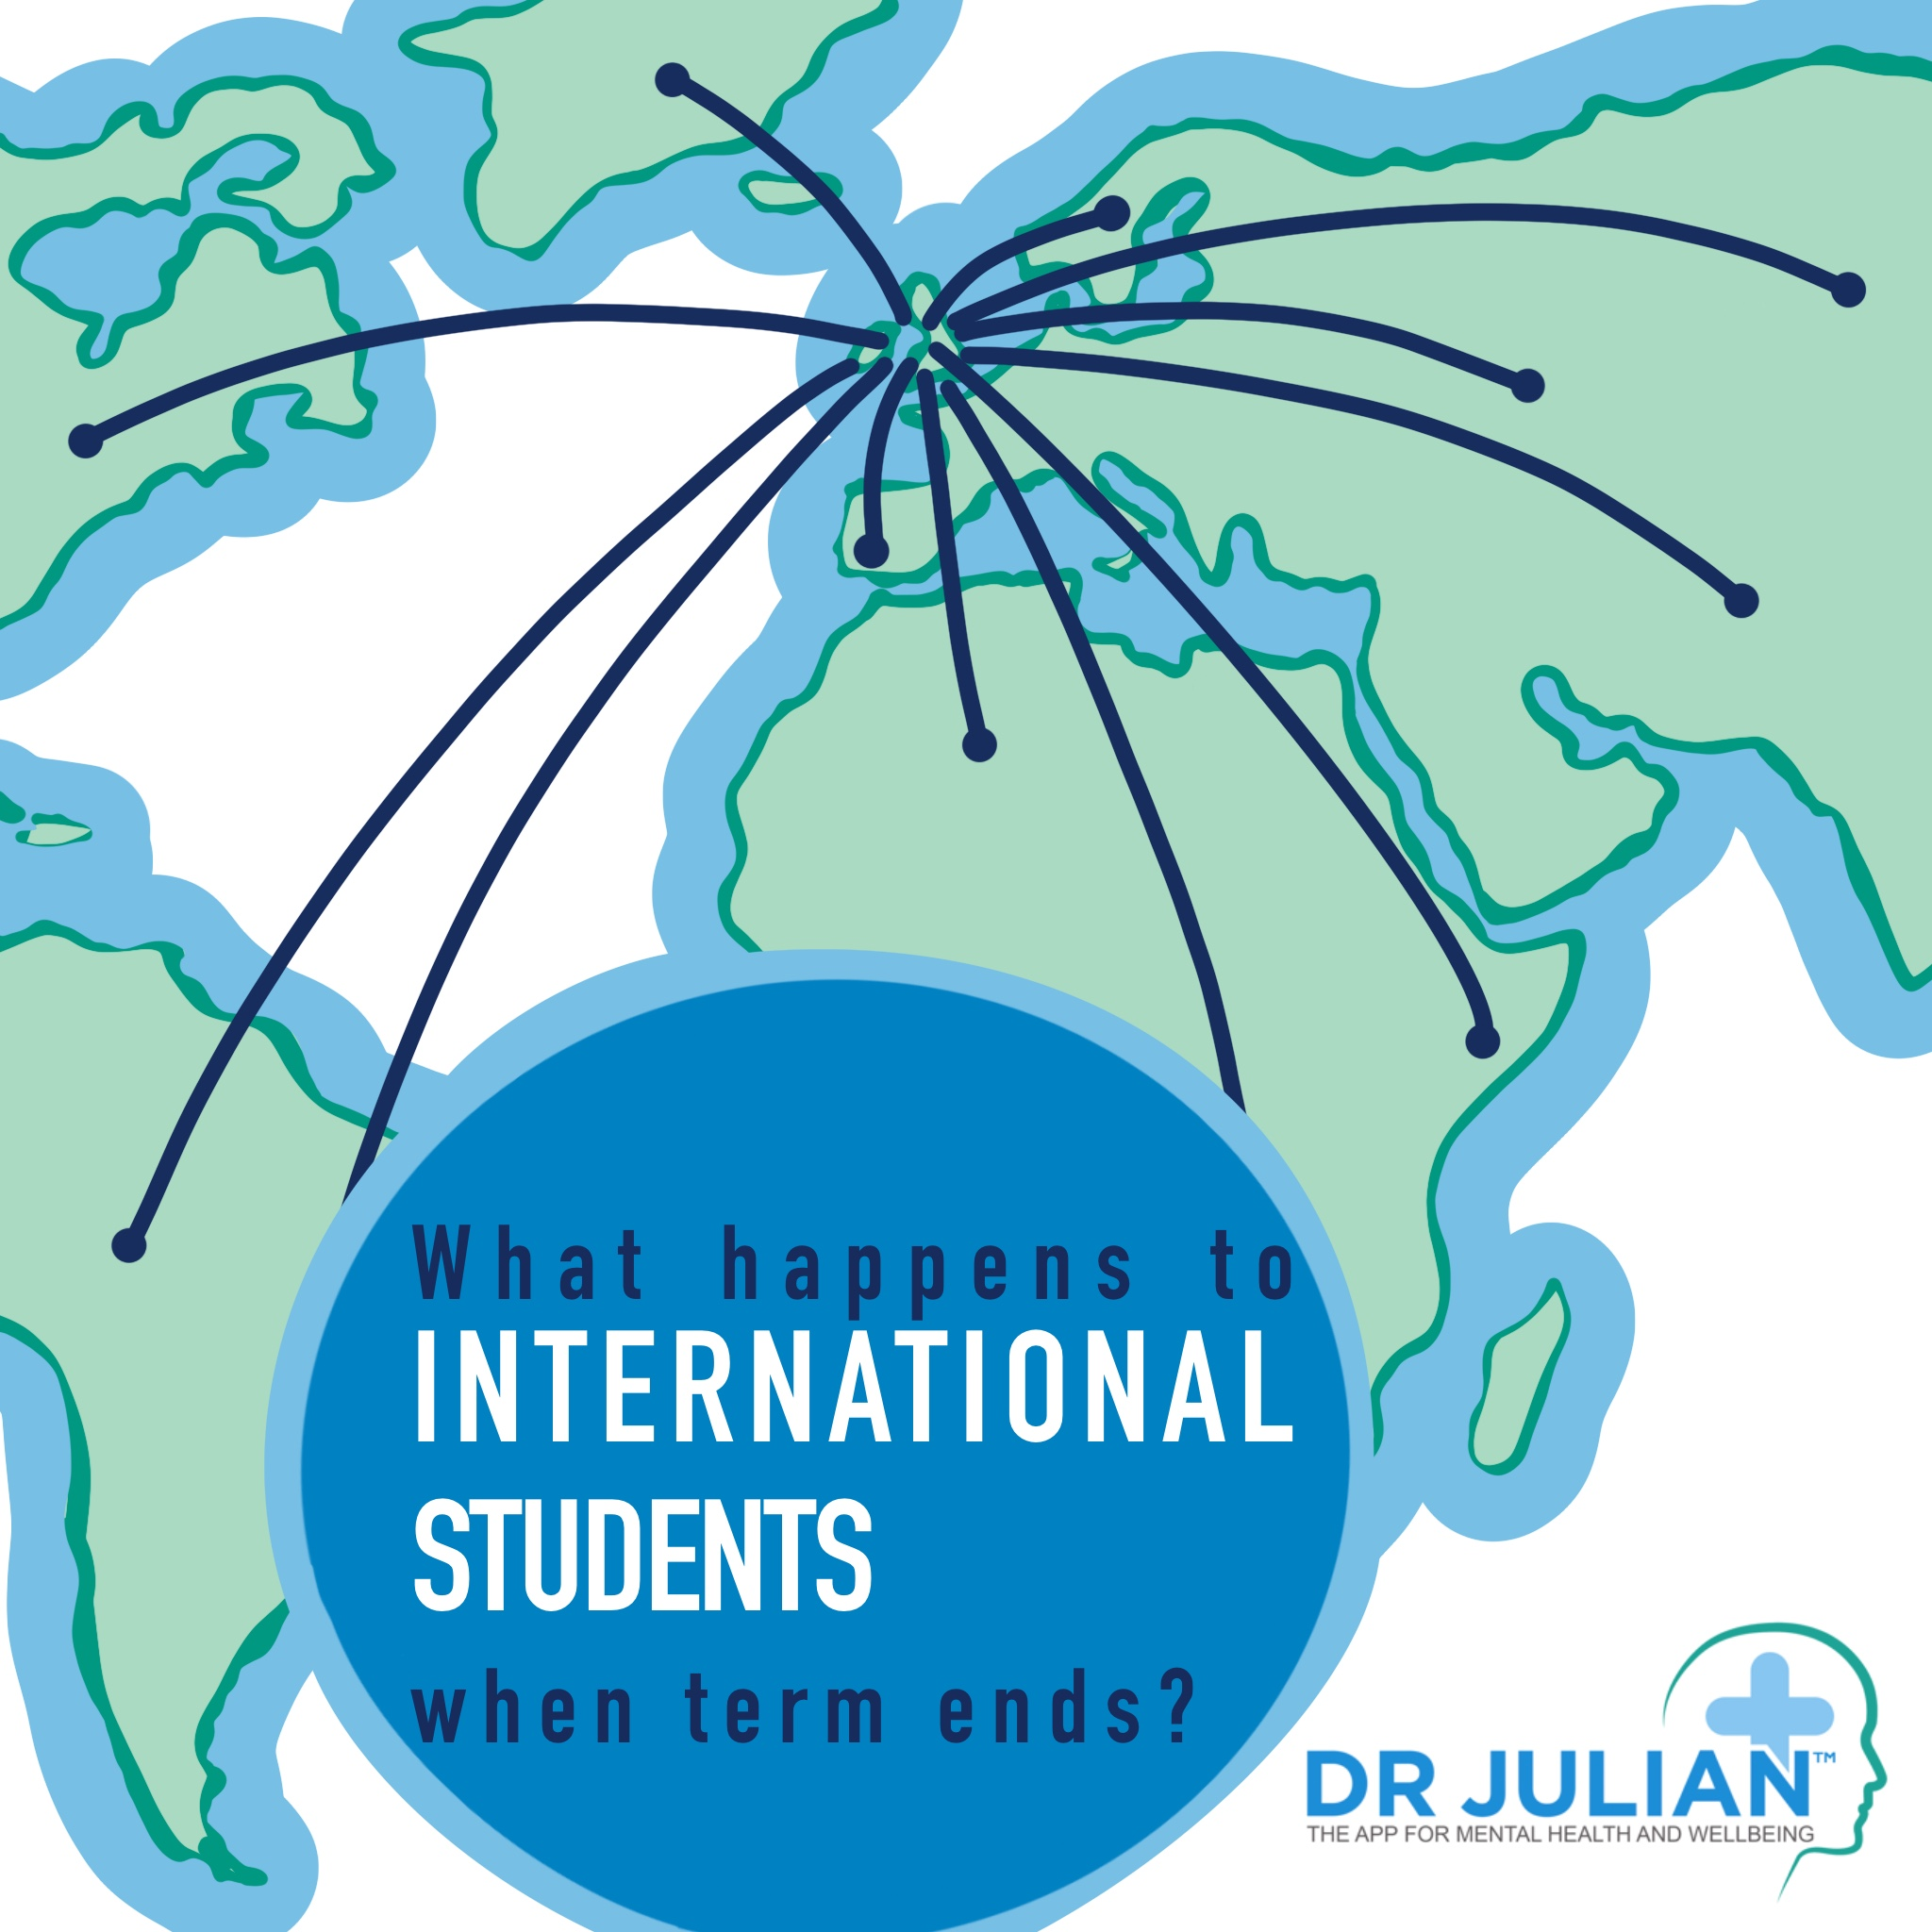 Safeguarding International Student Mental Health